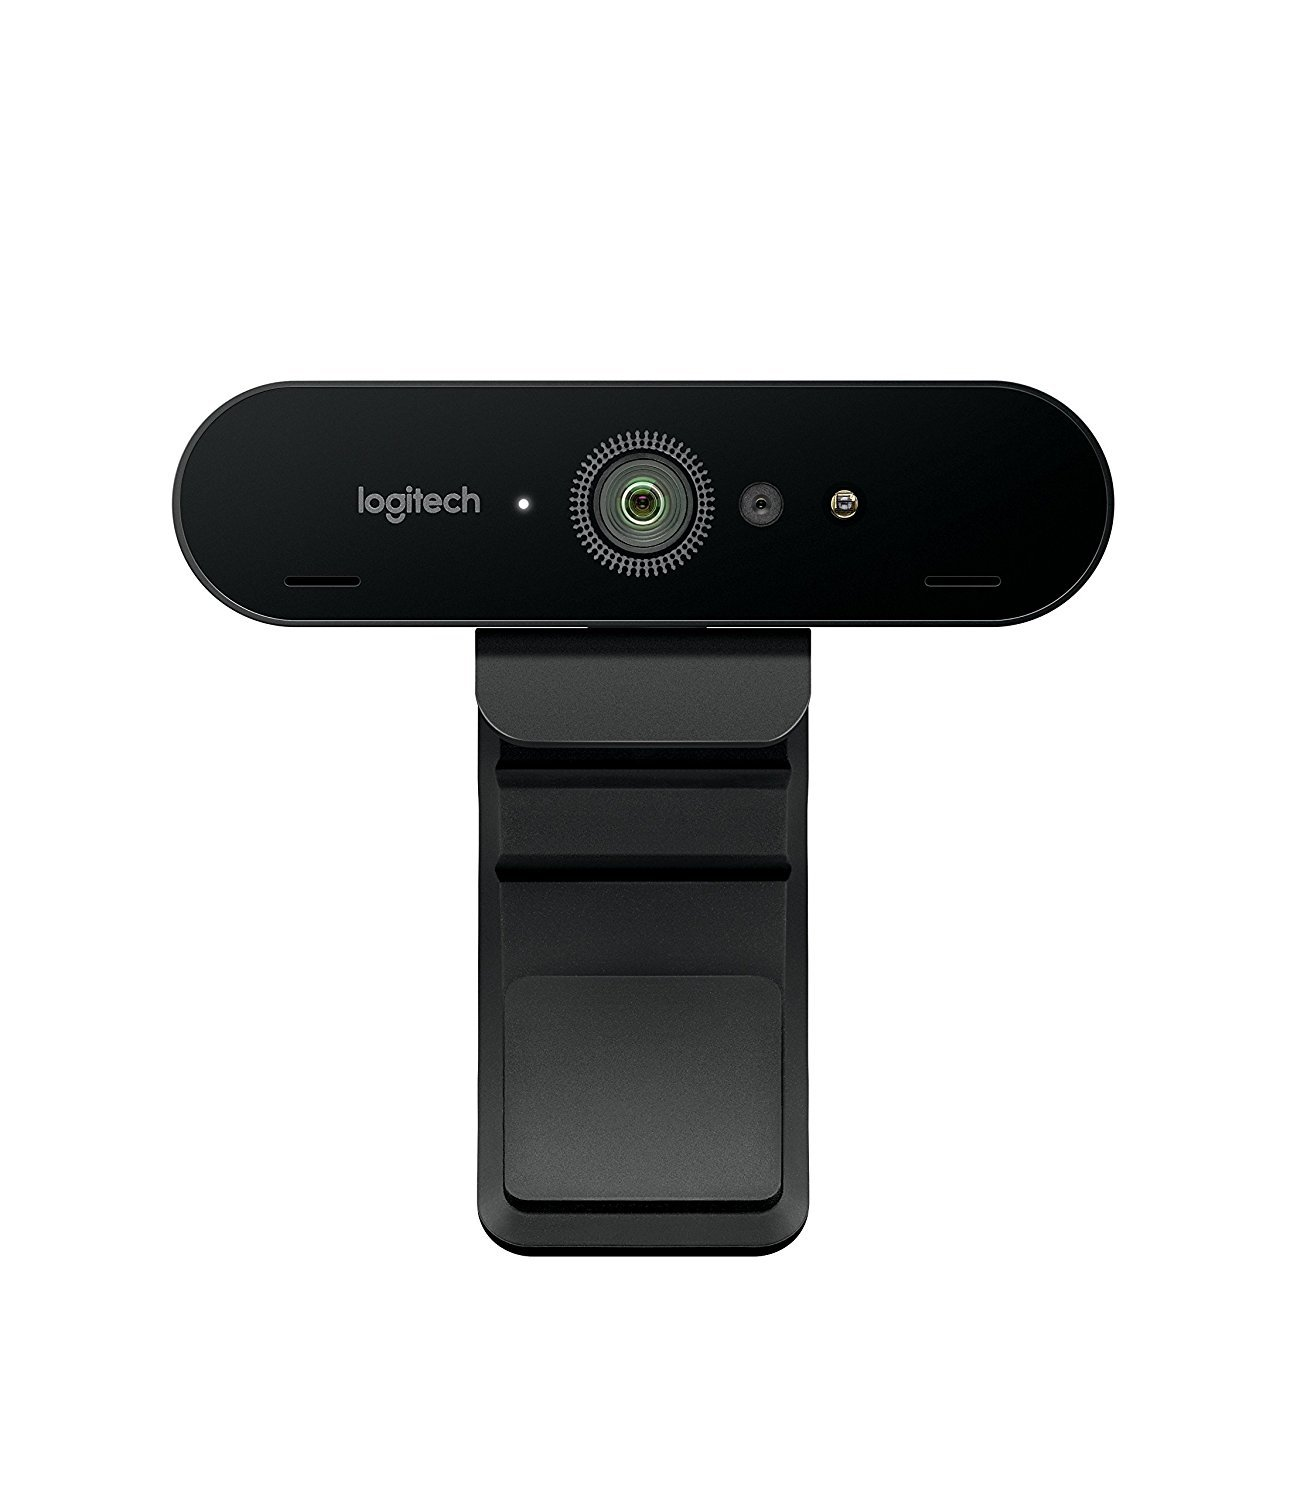 Logitech BRIO - Ultra HD Webcam for Video Conferencing, Recording, and Streaming by Logitech